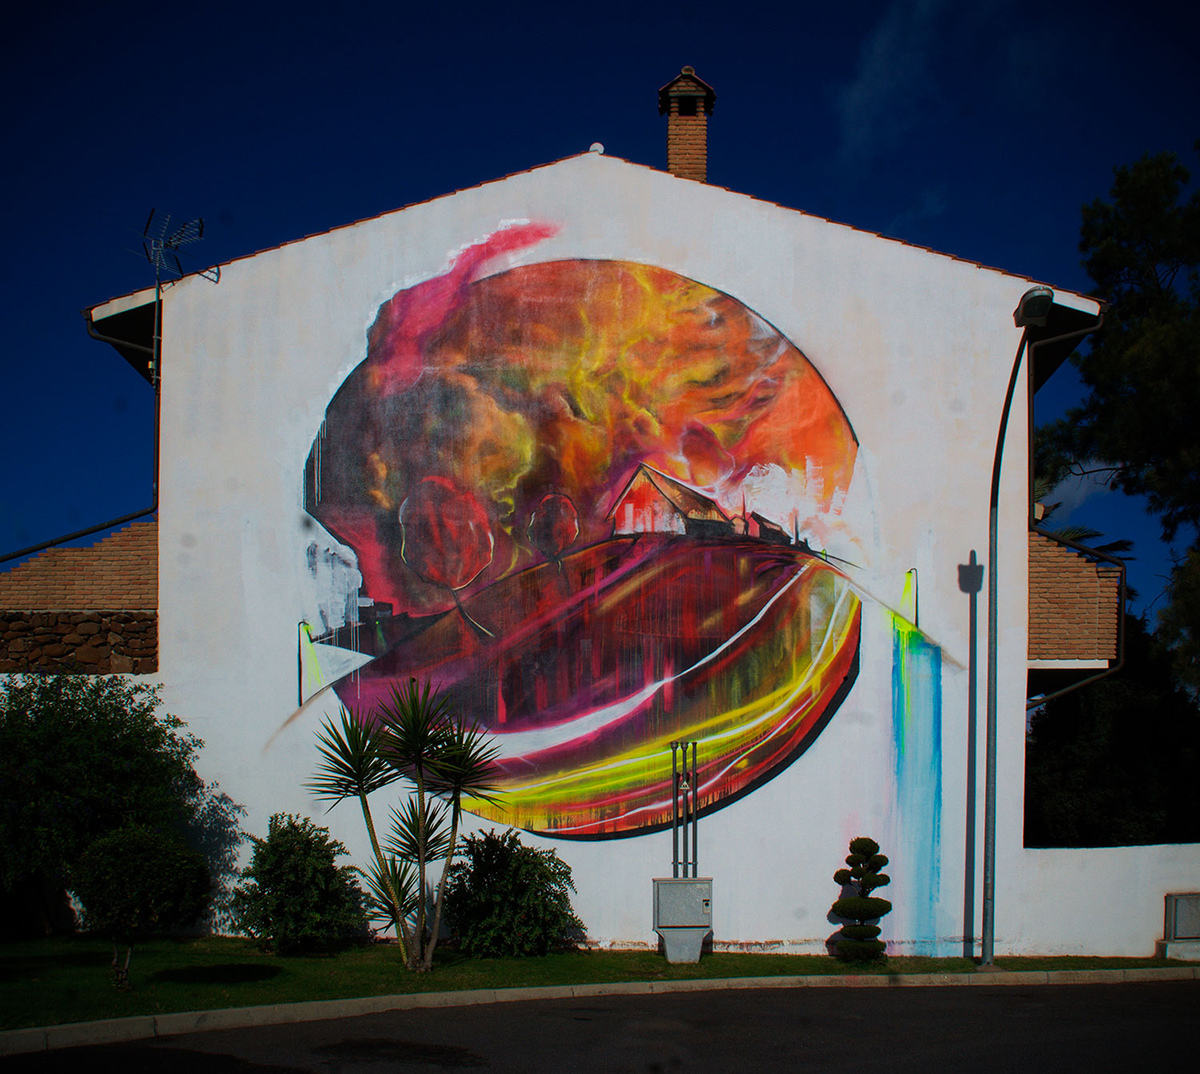 manu-invisible-frode-new-mural-in-san-sperate-15